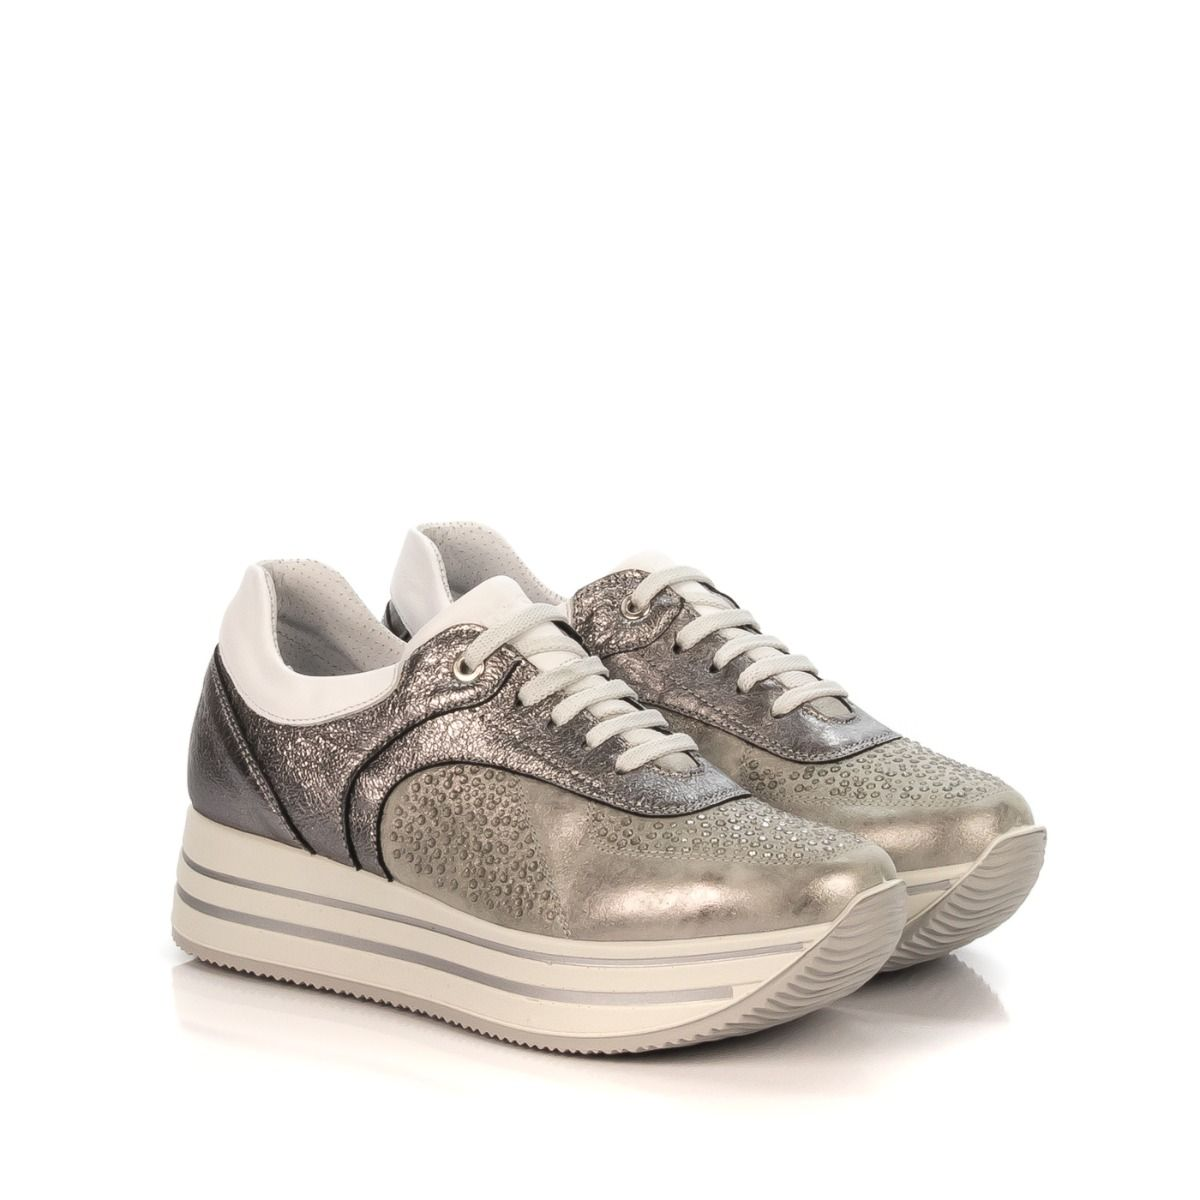 official photos 51e57 08820 IGI&CO SNEAKERS DONNA 11556 00 GRIGIO STRASS